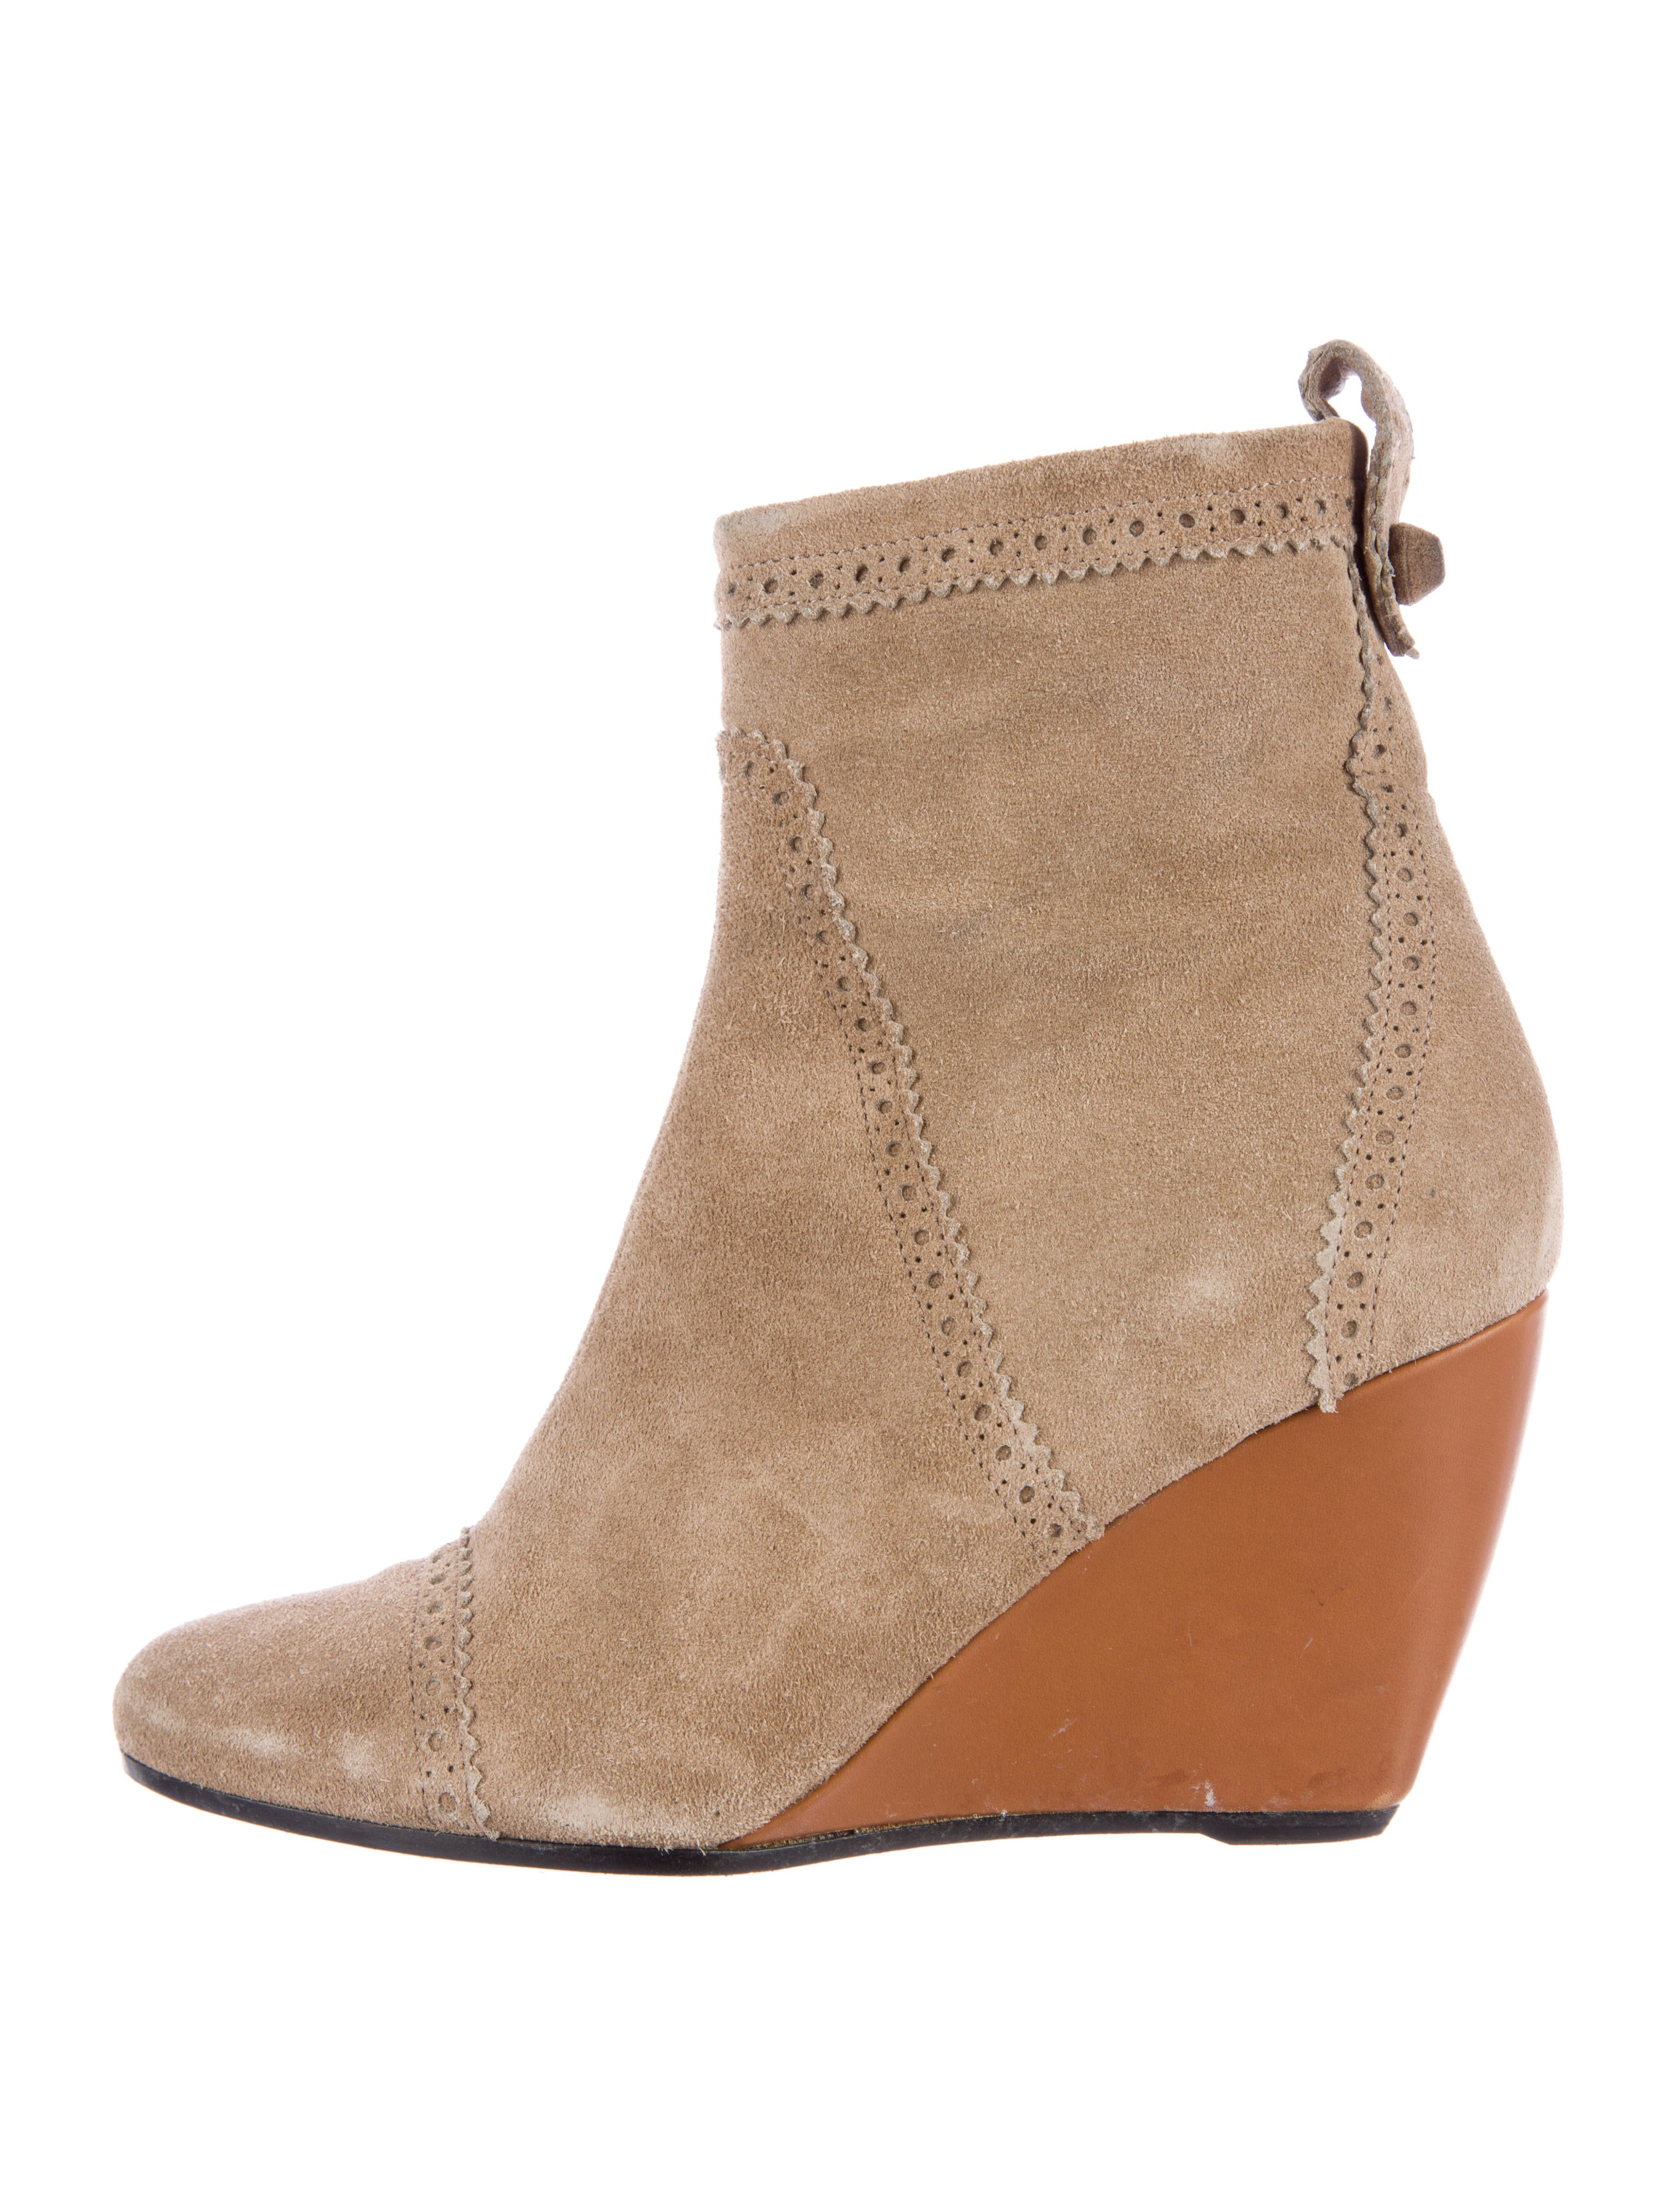 Strap To It Pointy Buckled Booties To Cap It Off Faux Suede Combat Boots Zip Line Chunky Faux Suede Booties GoJane has you covered with flat ankle booties that still look totally on fleek. Try a pair of low wedge booties with just a slight lift, or go for the gold in a pair of metallic sneaker booties that have that athleisure look totally.